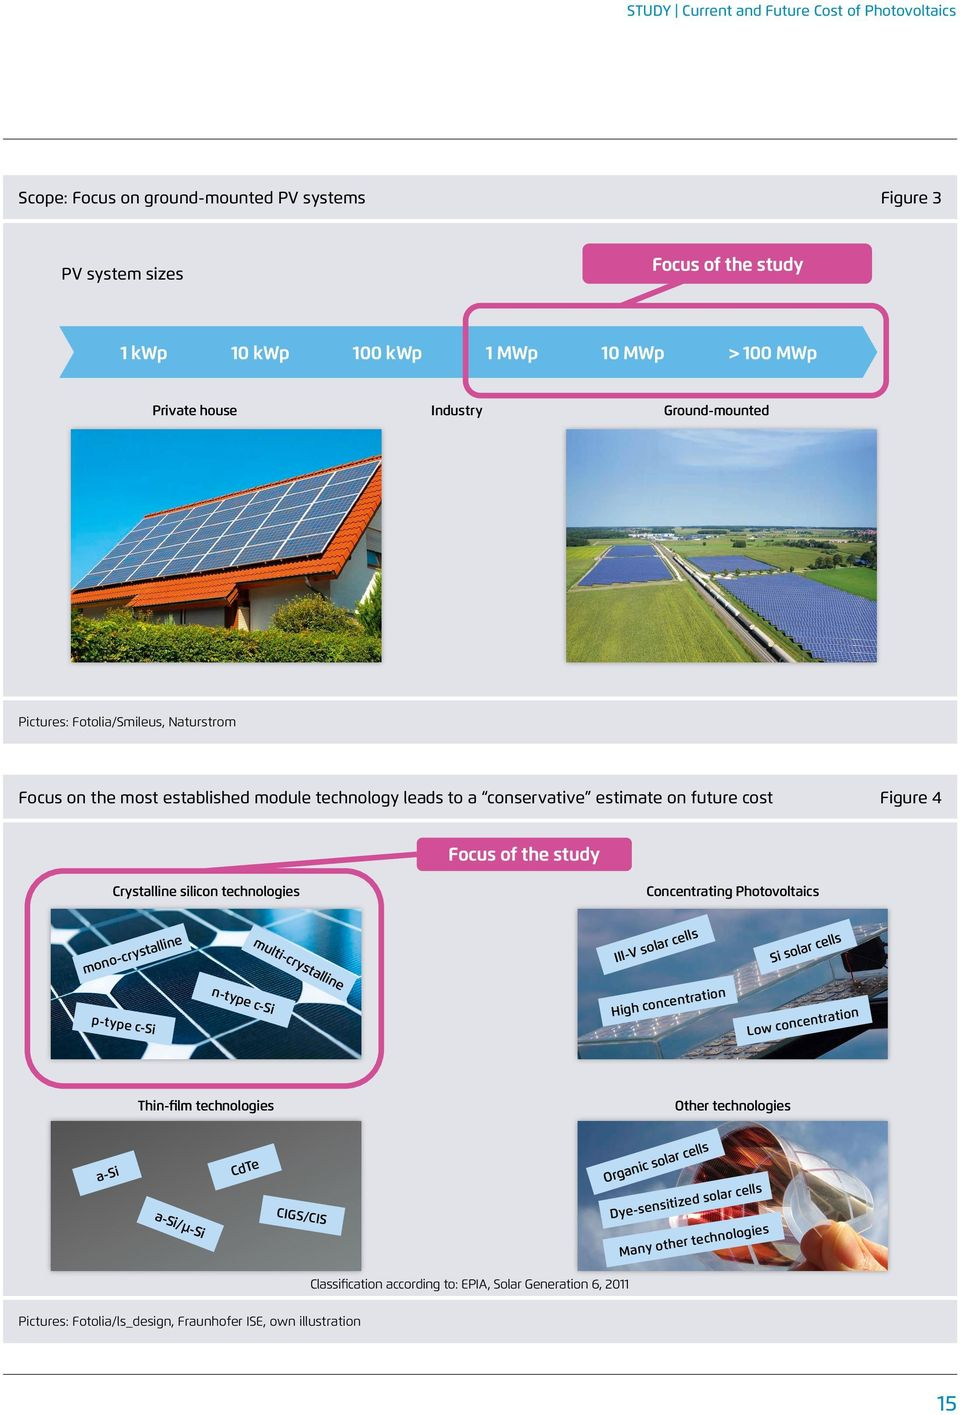 Crystalline silicon technologies Concentrating Photovoltaics mono-crystalline multi-crystalline III-V solar cells Si solar cells p-type c-si n-type c-si high concentration low concentration Thin-film